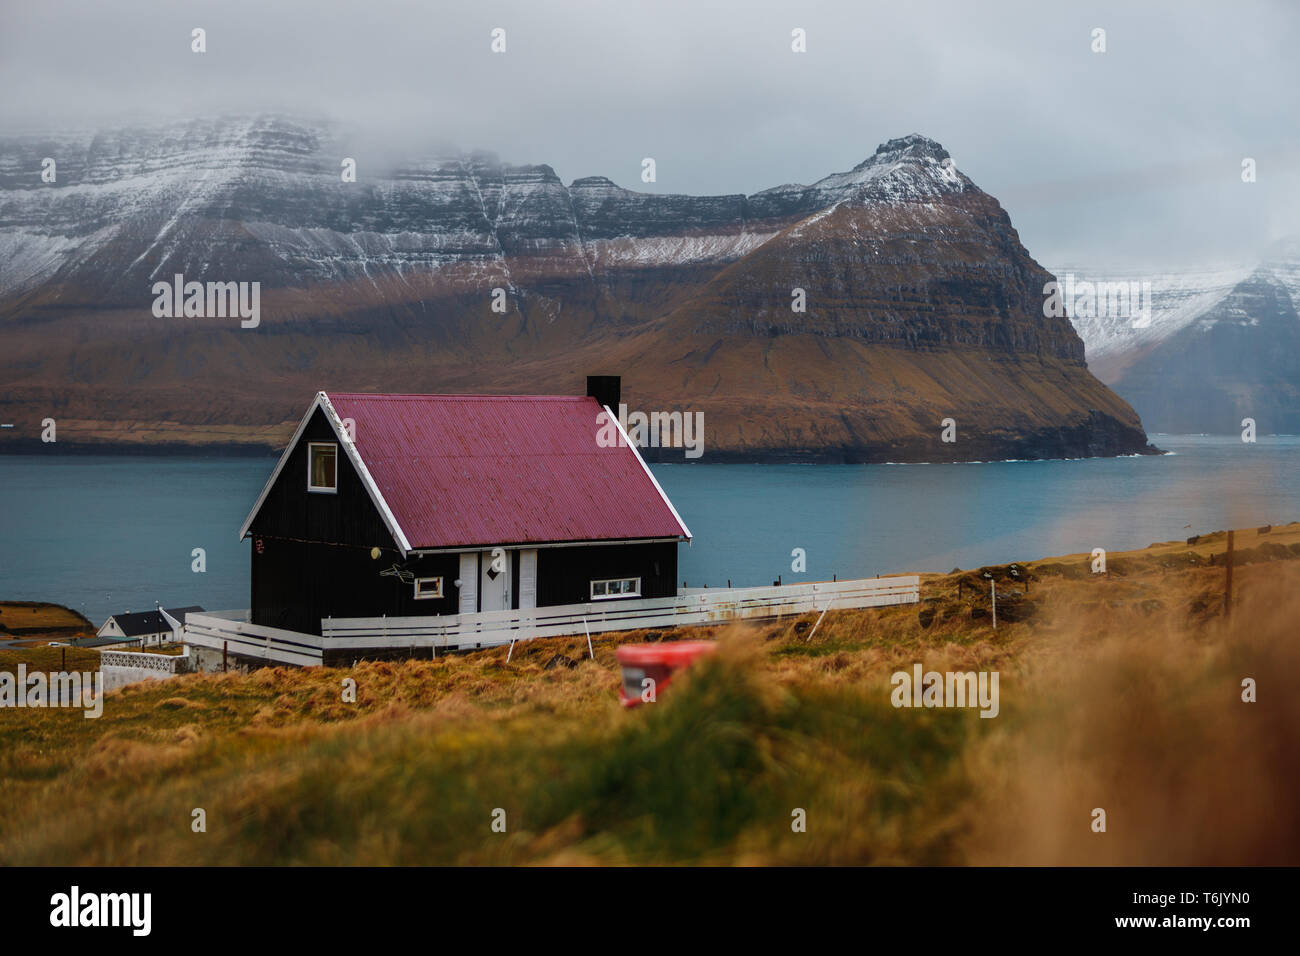 Typical Faroese black wooden house with colourful roof in the village Viðareiði with snow-covered peaks of Kunoy and Kalsoy island (Faroe Islands) - Stock Image